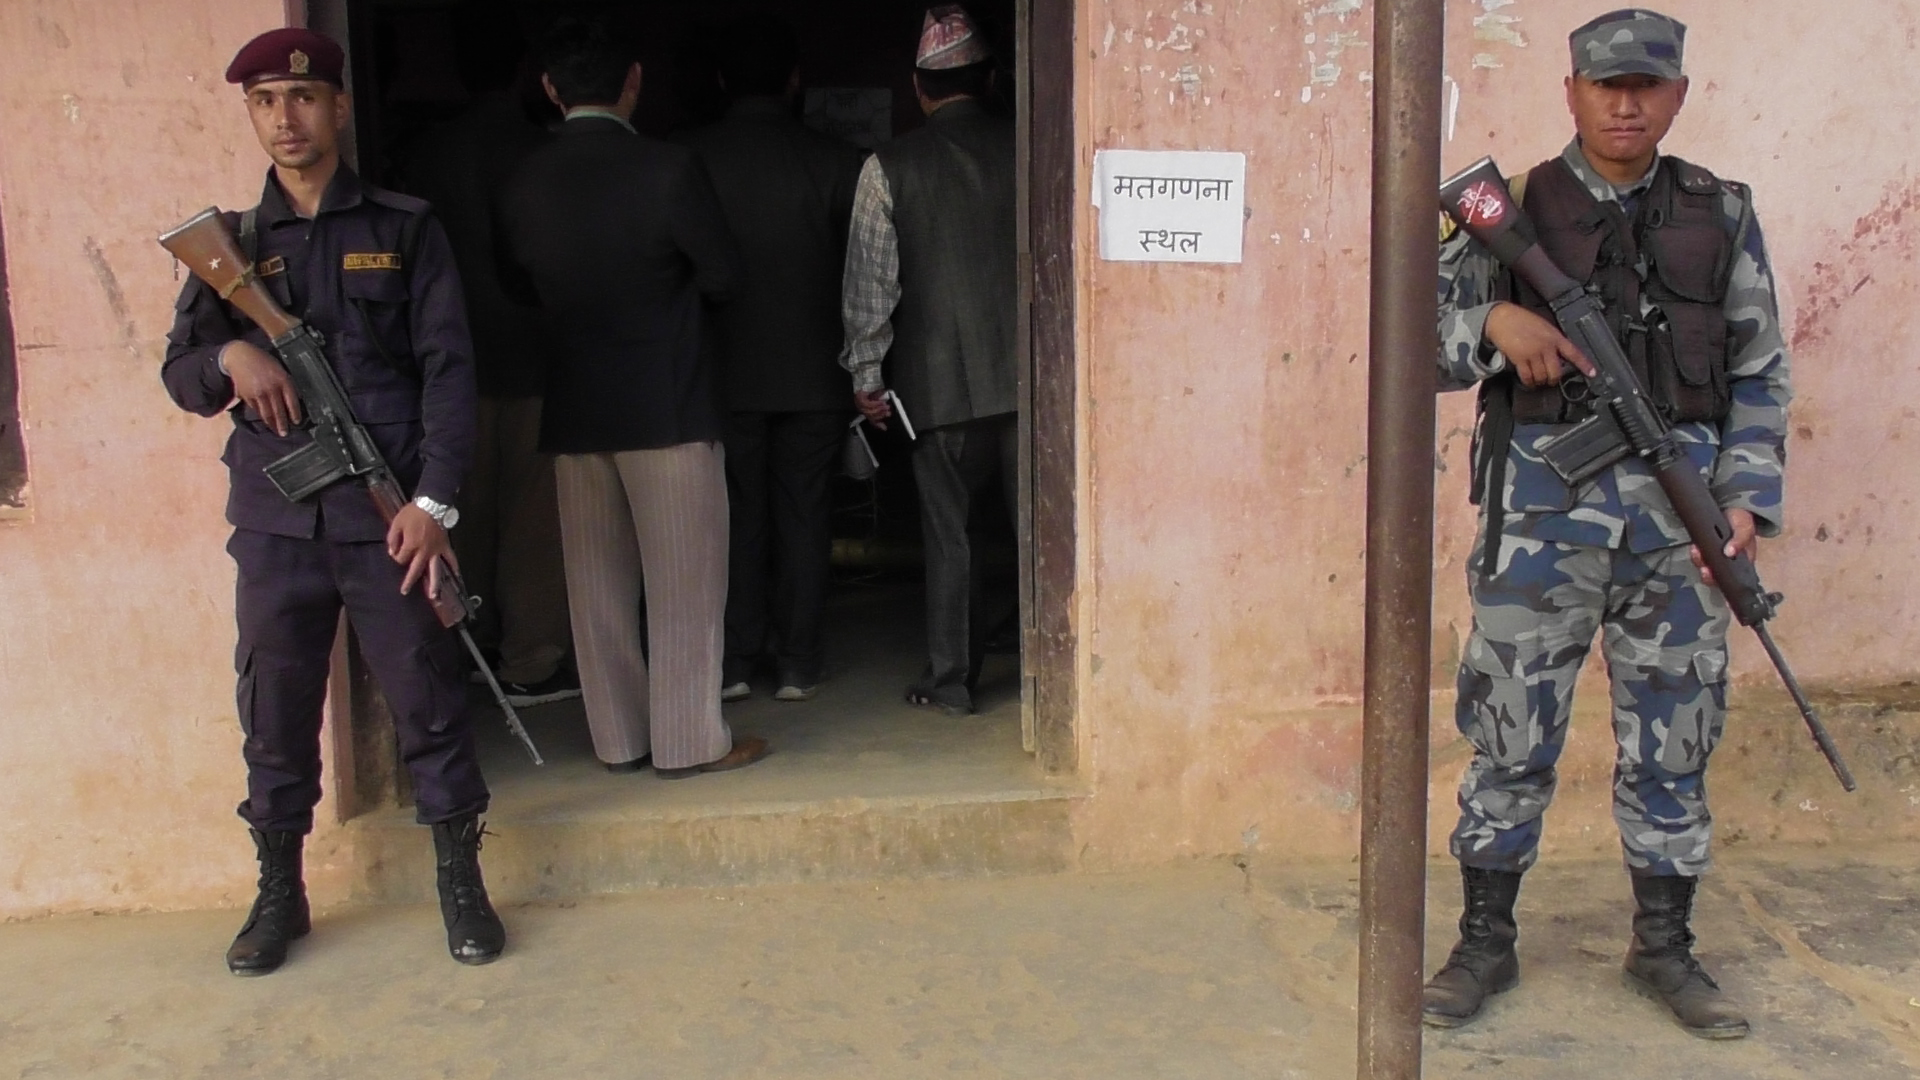 Security personnel stand guard at the entrance of counting venue in Phidim, Panchthar, on Friday. Photo: Laxmi Gautam